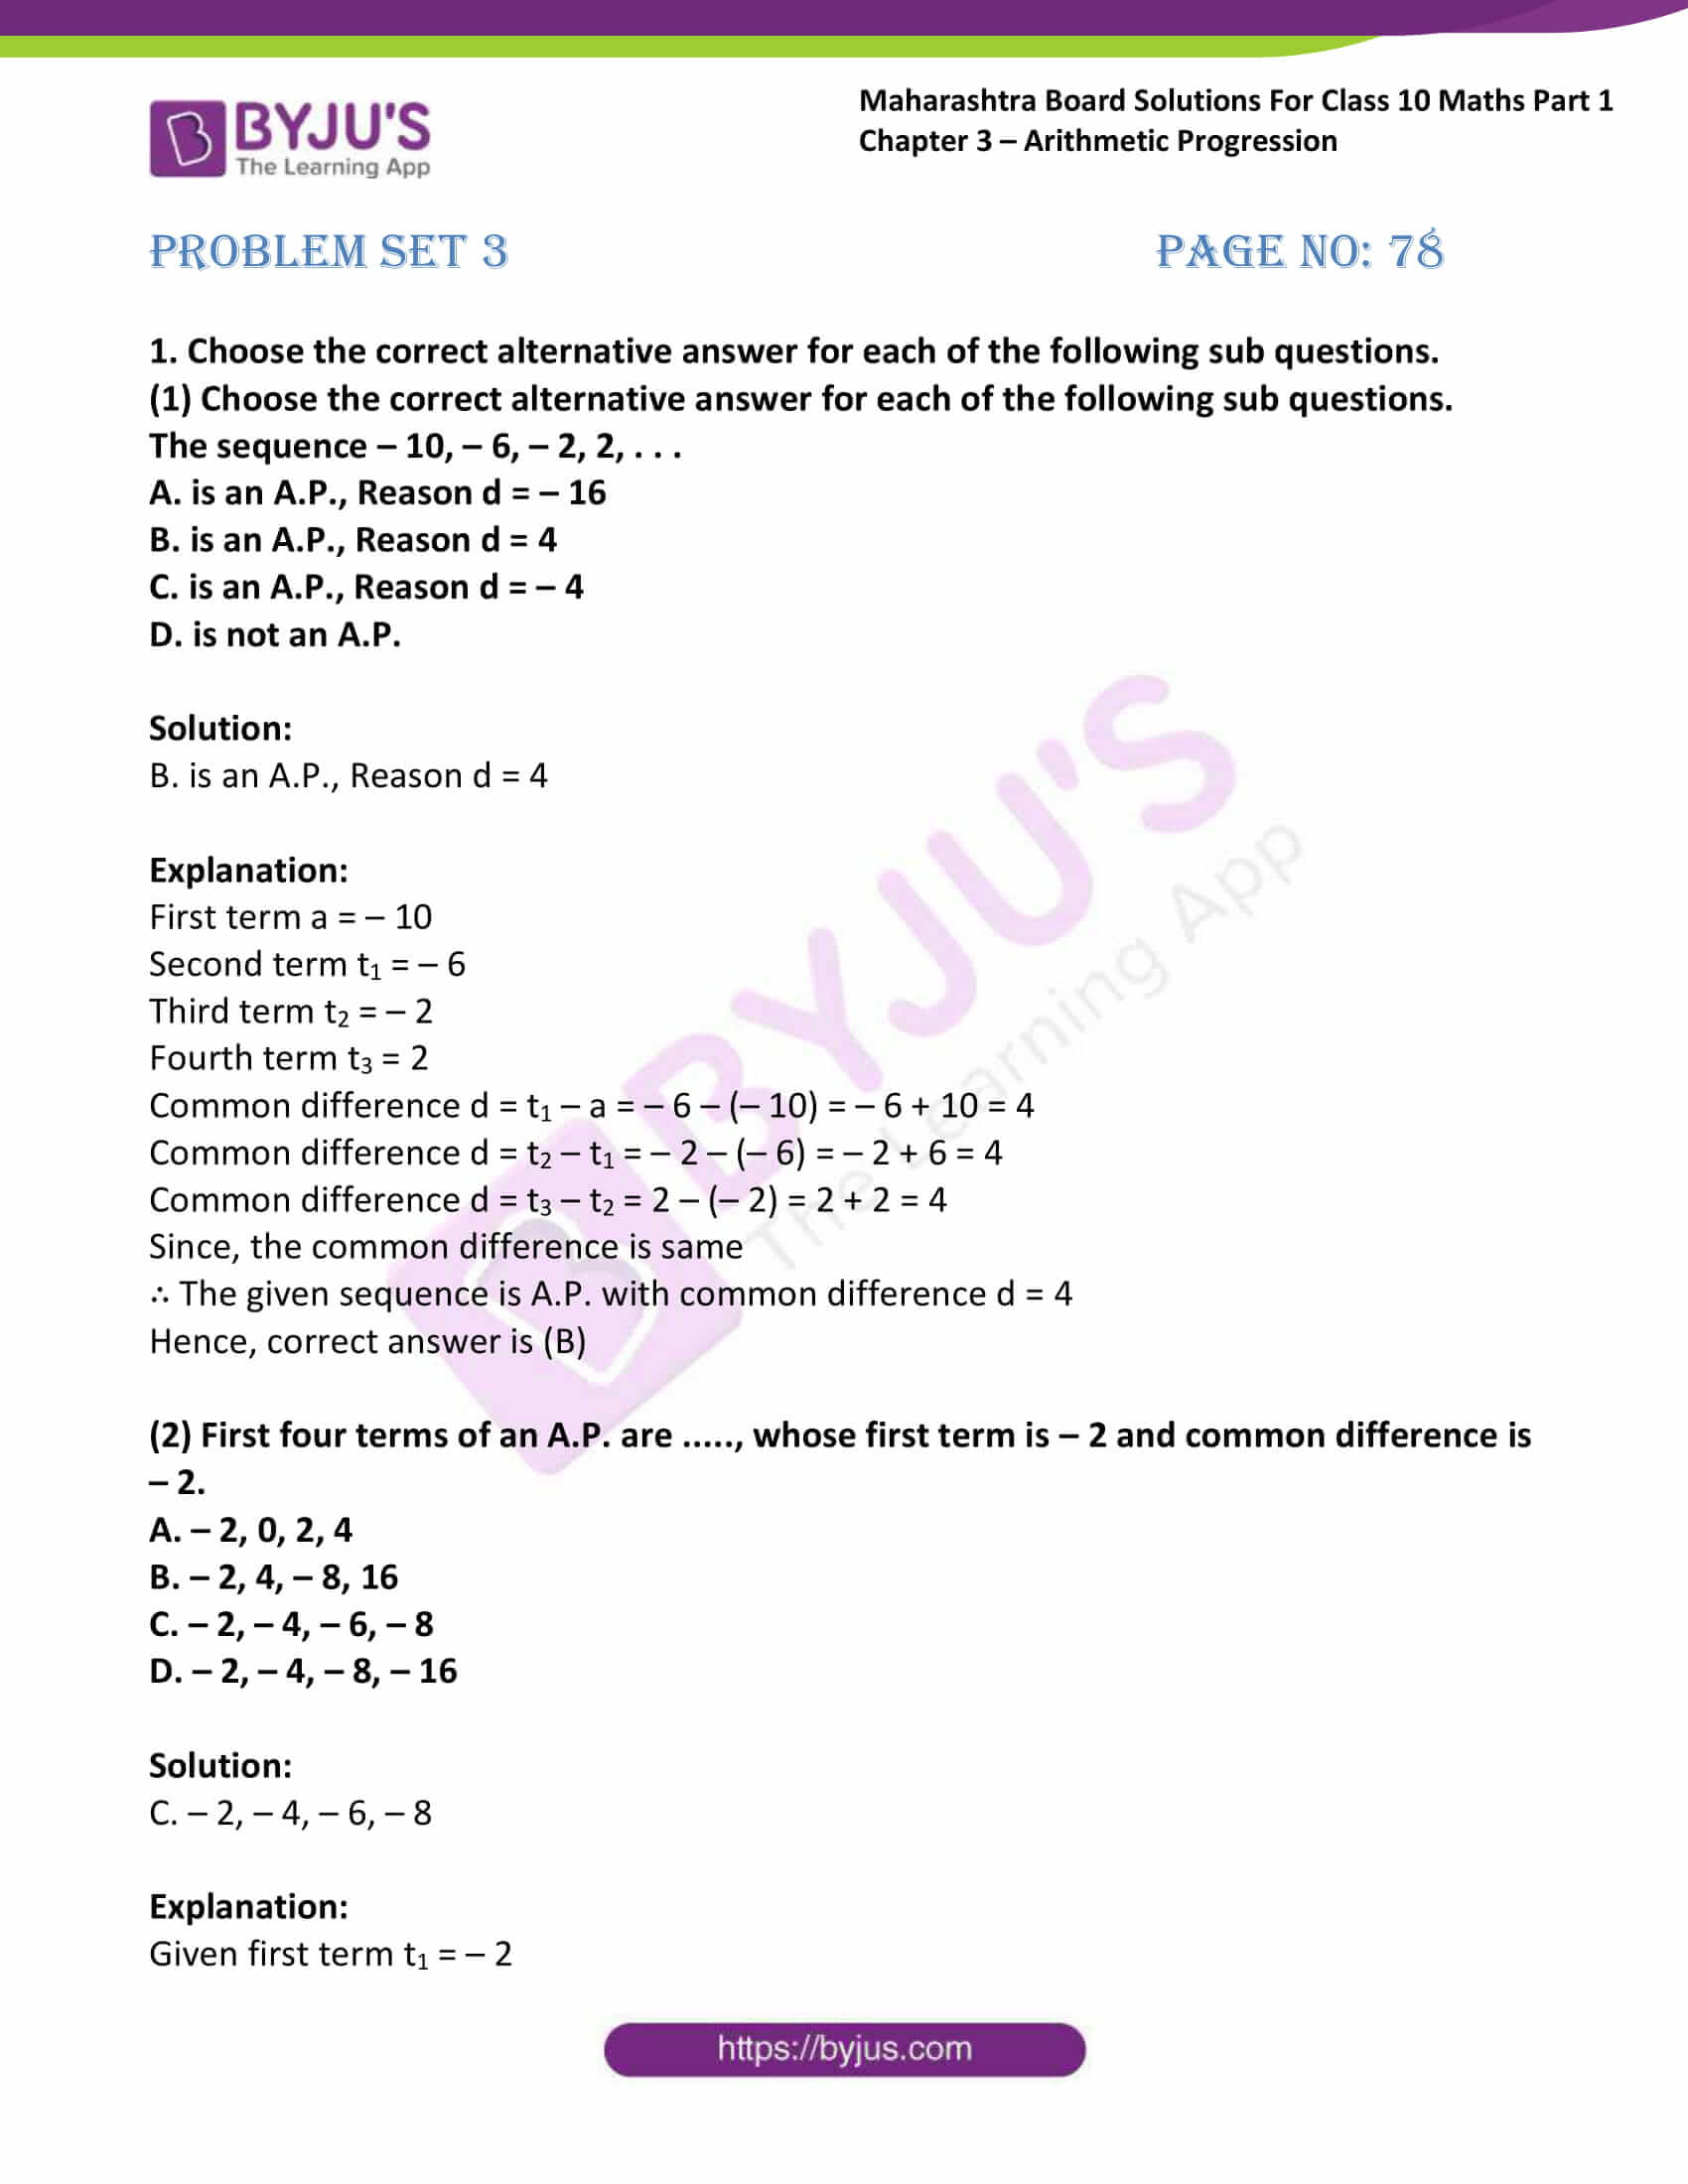 msbshse solutions class 10 maths part 1 chapter 3 31